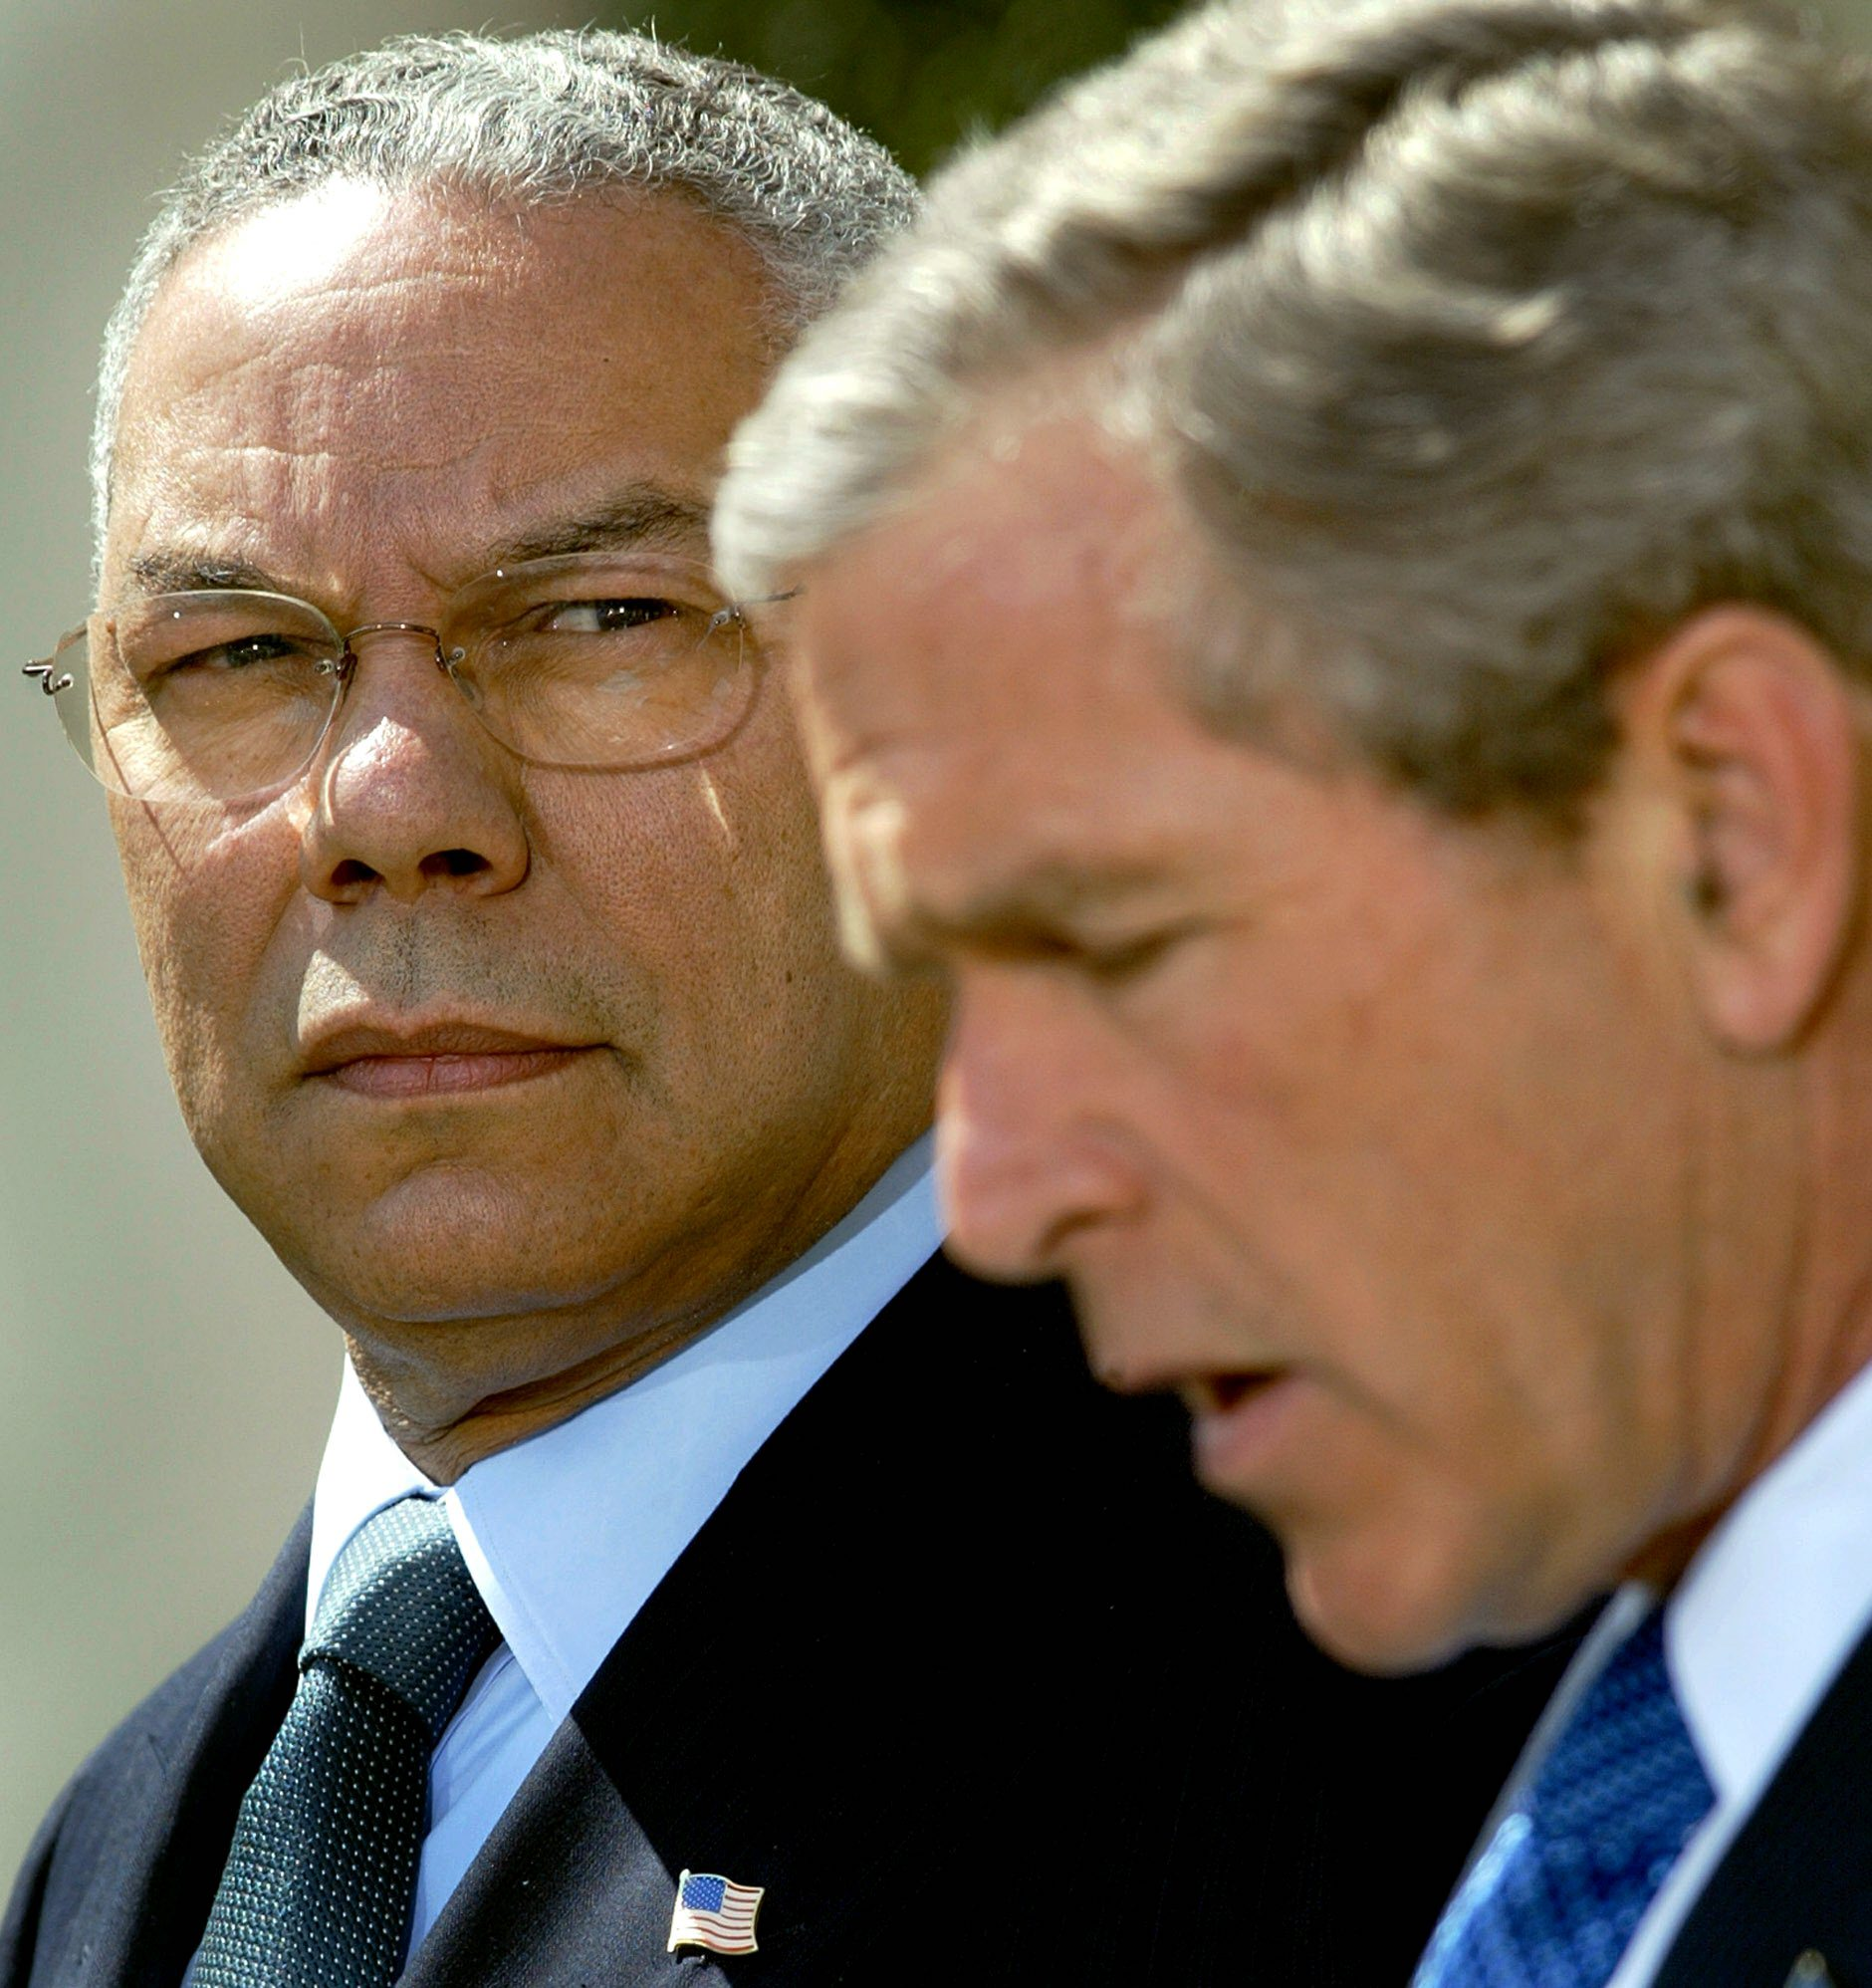 colin powell essay Colin powell colin powel is one of the most significant african americans of our time through his success, popularity, and leadership excellence he has.